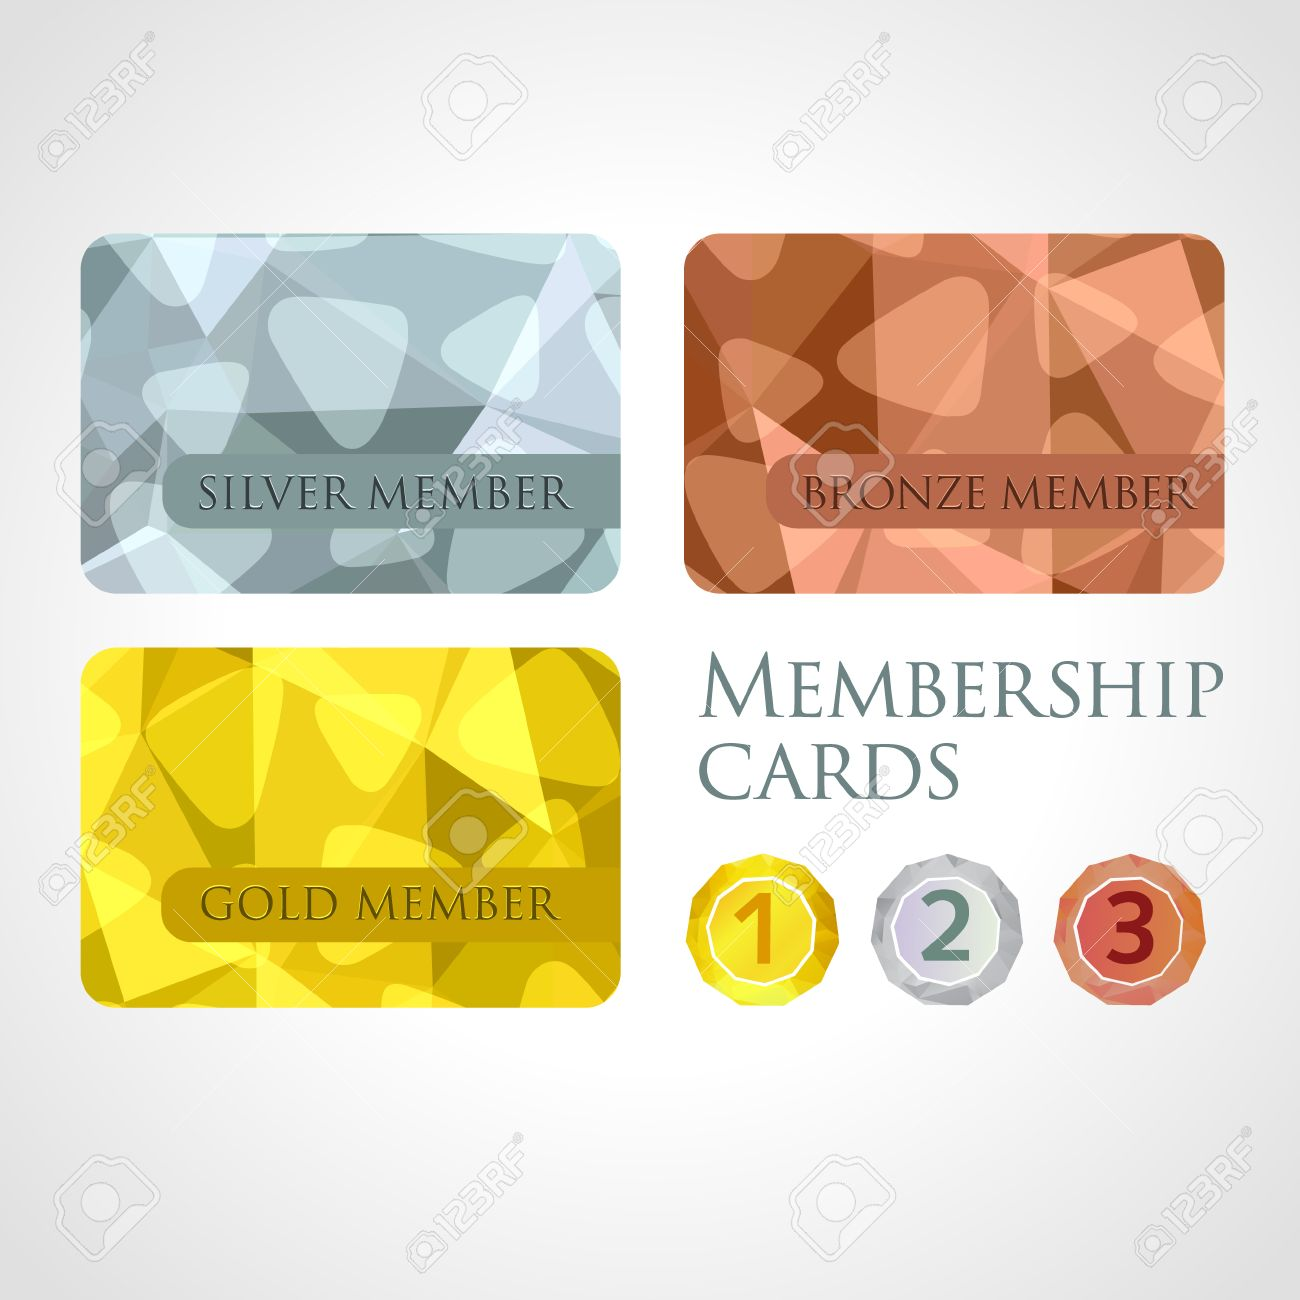 Gold Silver And Bronze Membership Cards Or Backgrounds And Medals